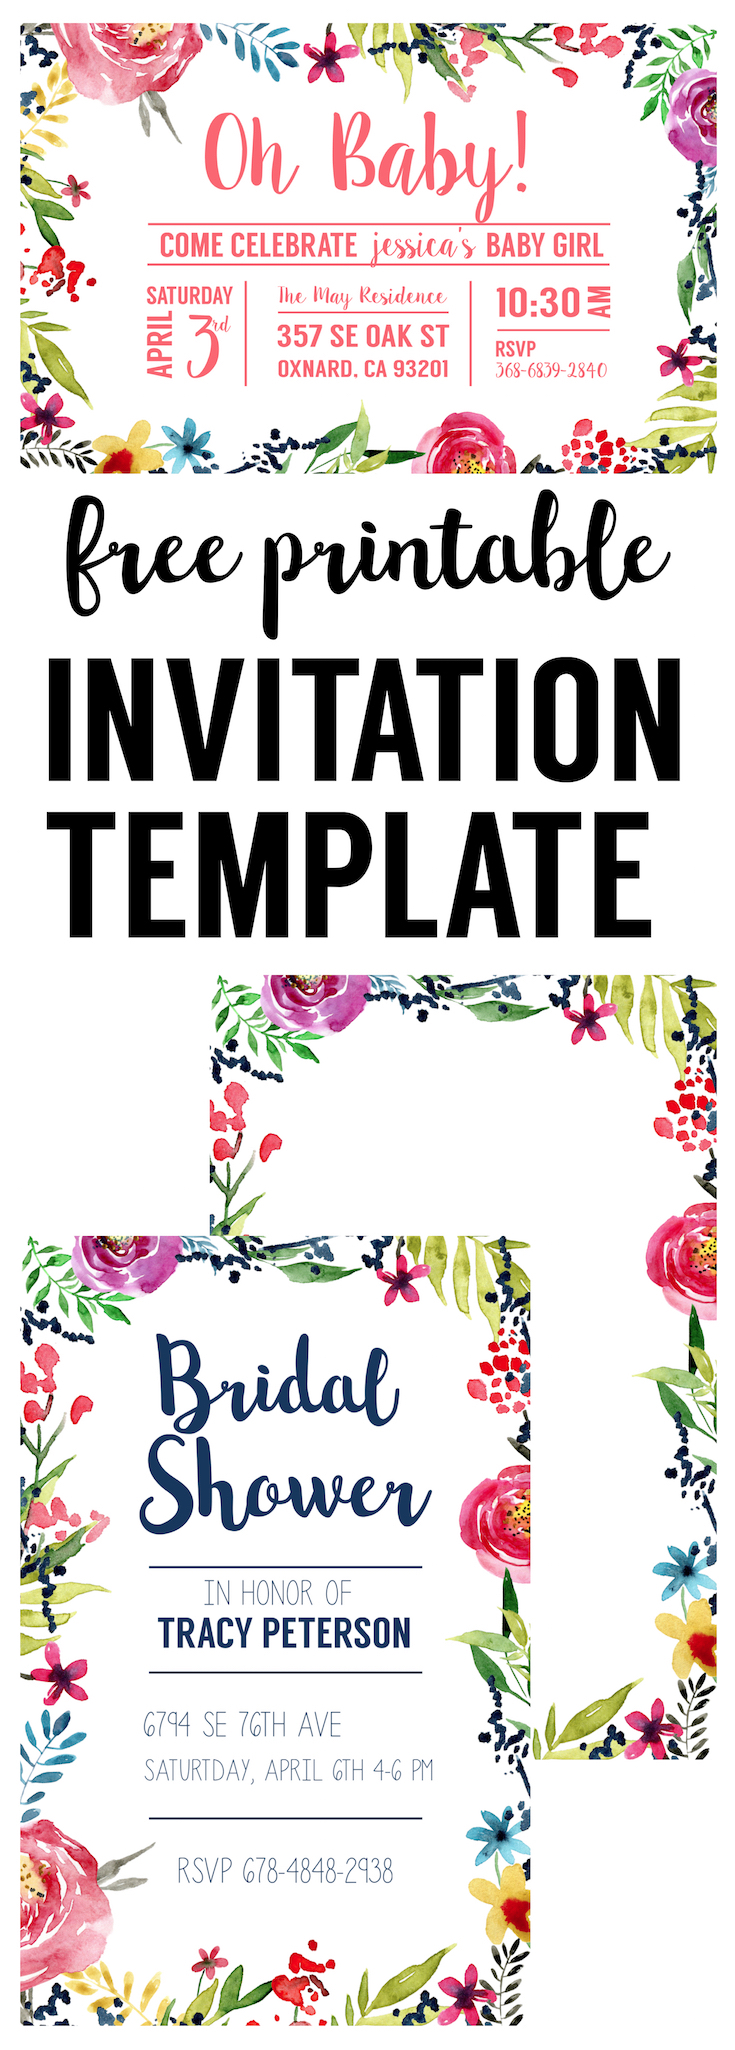 Floral Borders Invitations Free Printable Invitation Templates – Flower Party Invitations